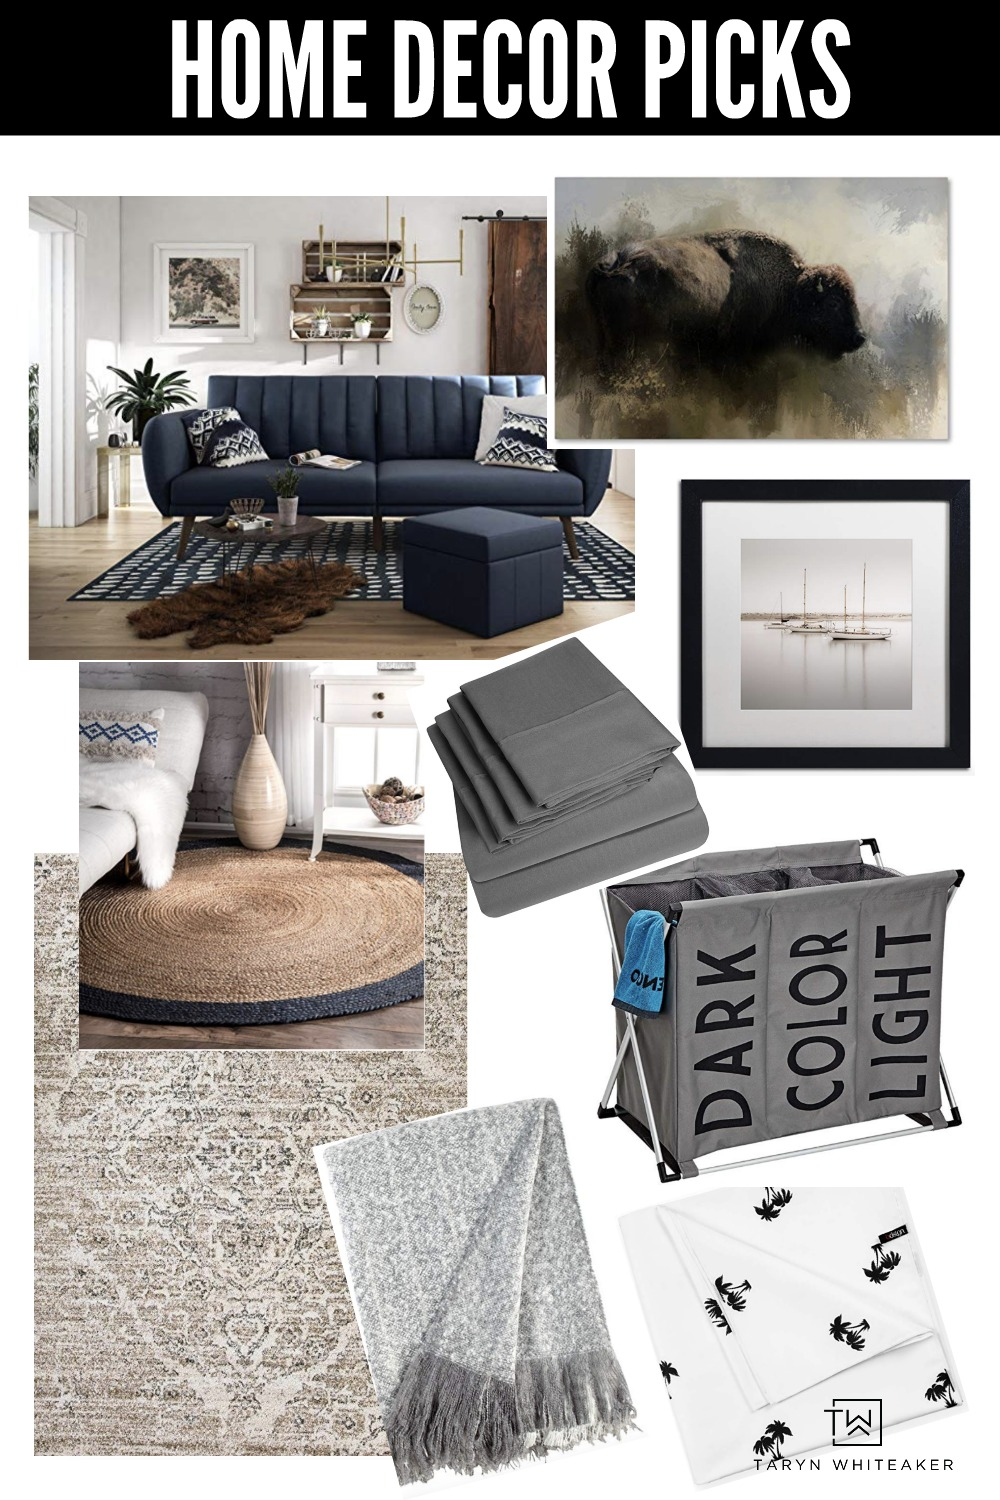 Come shop my favorite Amazon Prime Day picks! Come shop this whole room design using items from Amazon that are on sale!